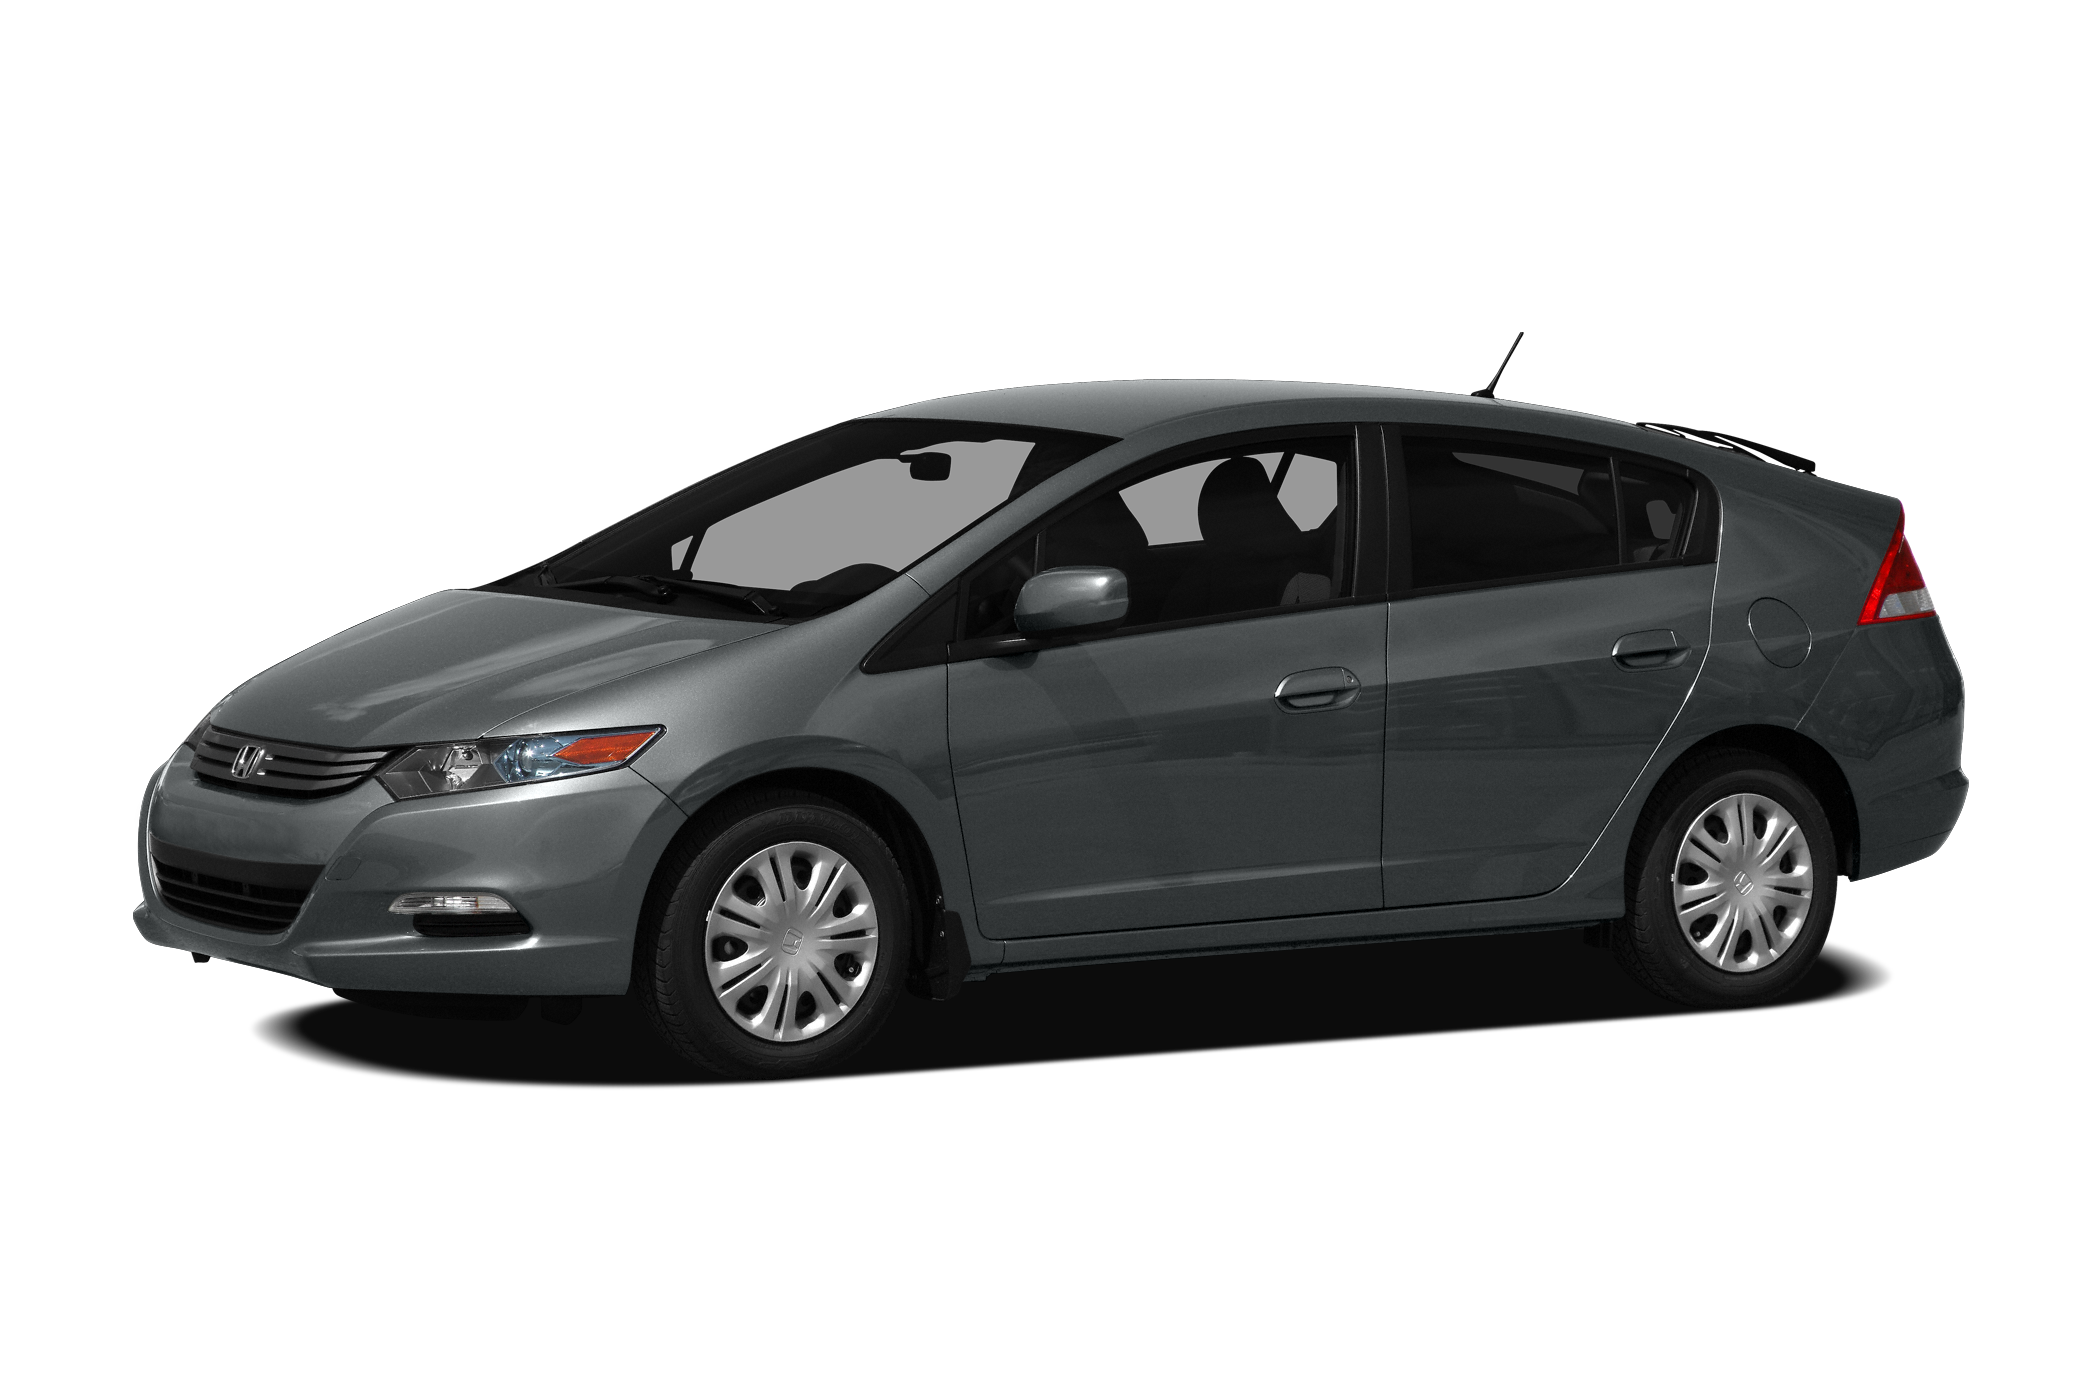 2011 Honda Insight Hatchback Consumer Reviews Autos Post